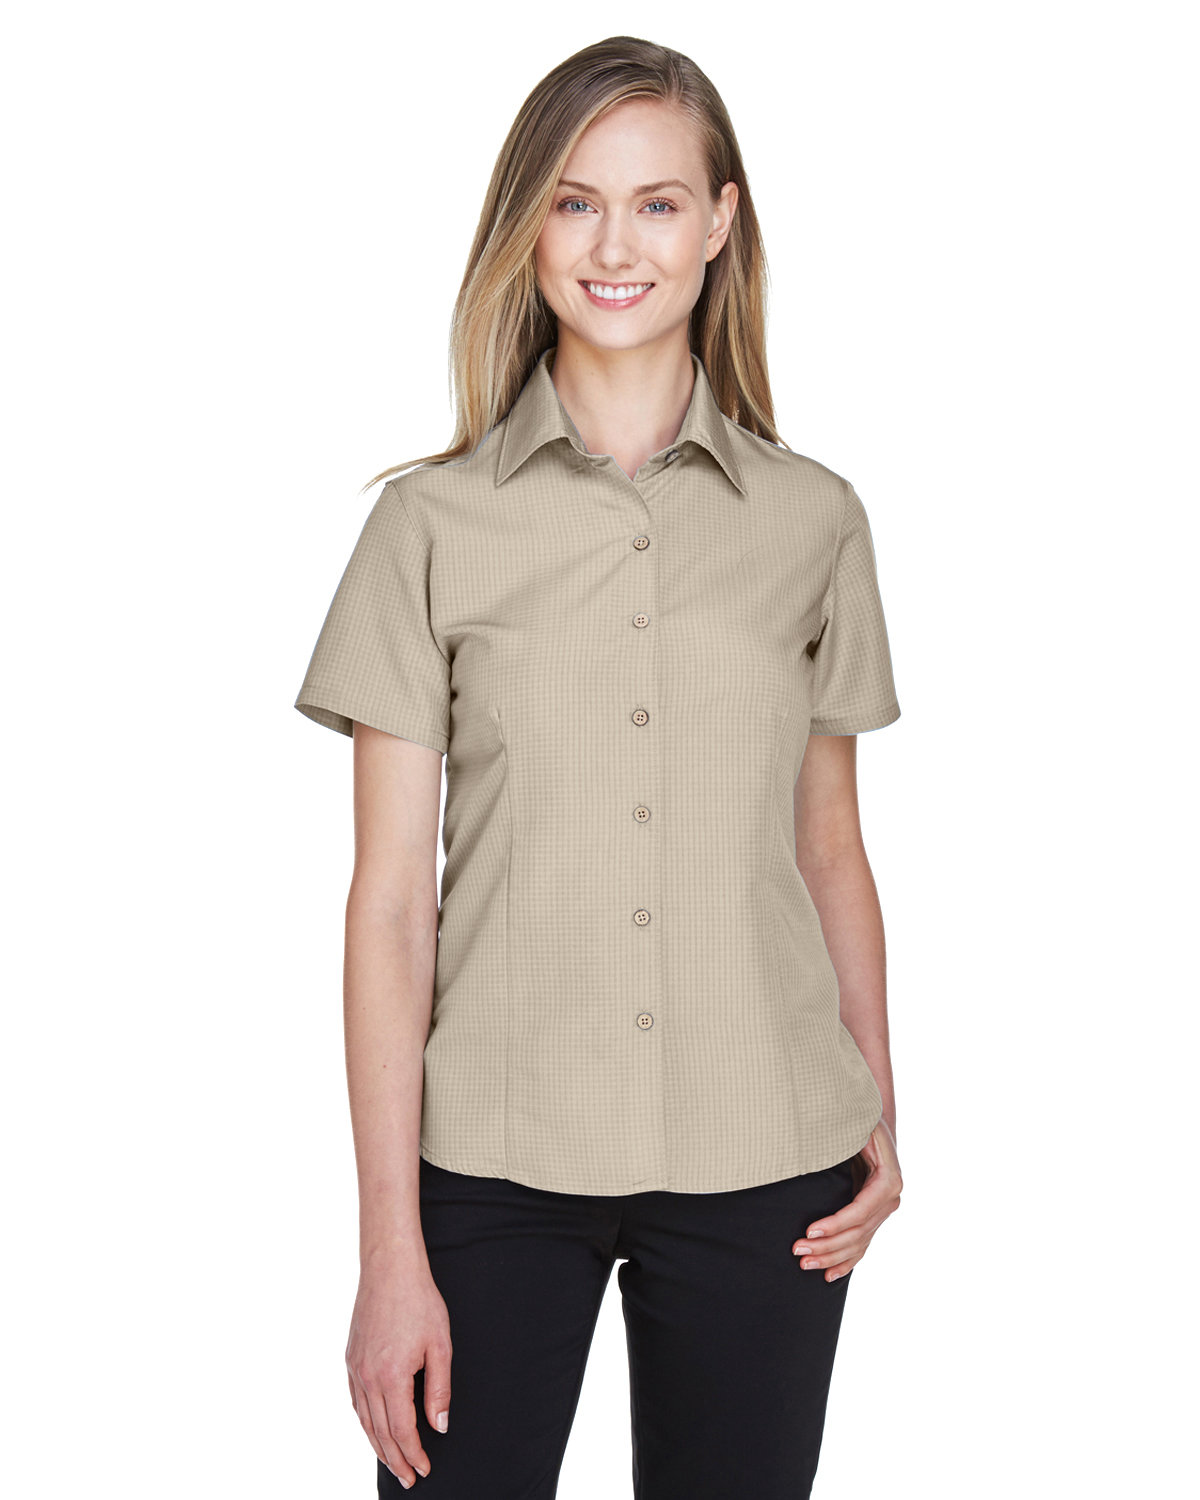 ce96e23b82db0 Front Back Side · Gallery View Download HiRes Design Studio. M560W Harriton  Ladies  Barbados Textured Camp Shirt